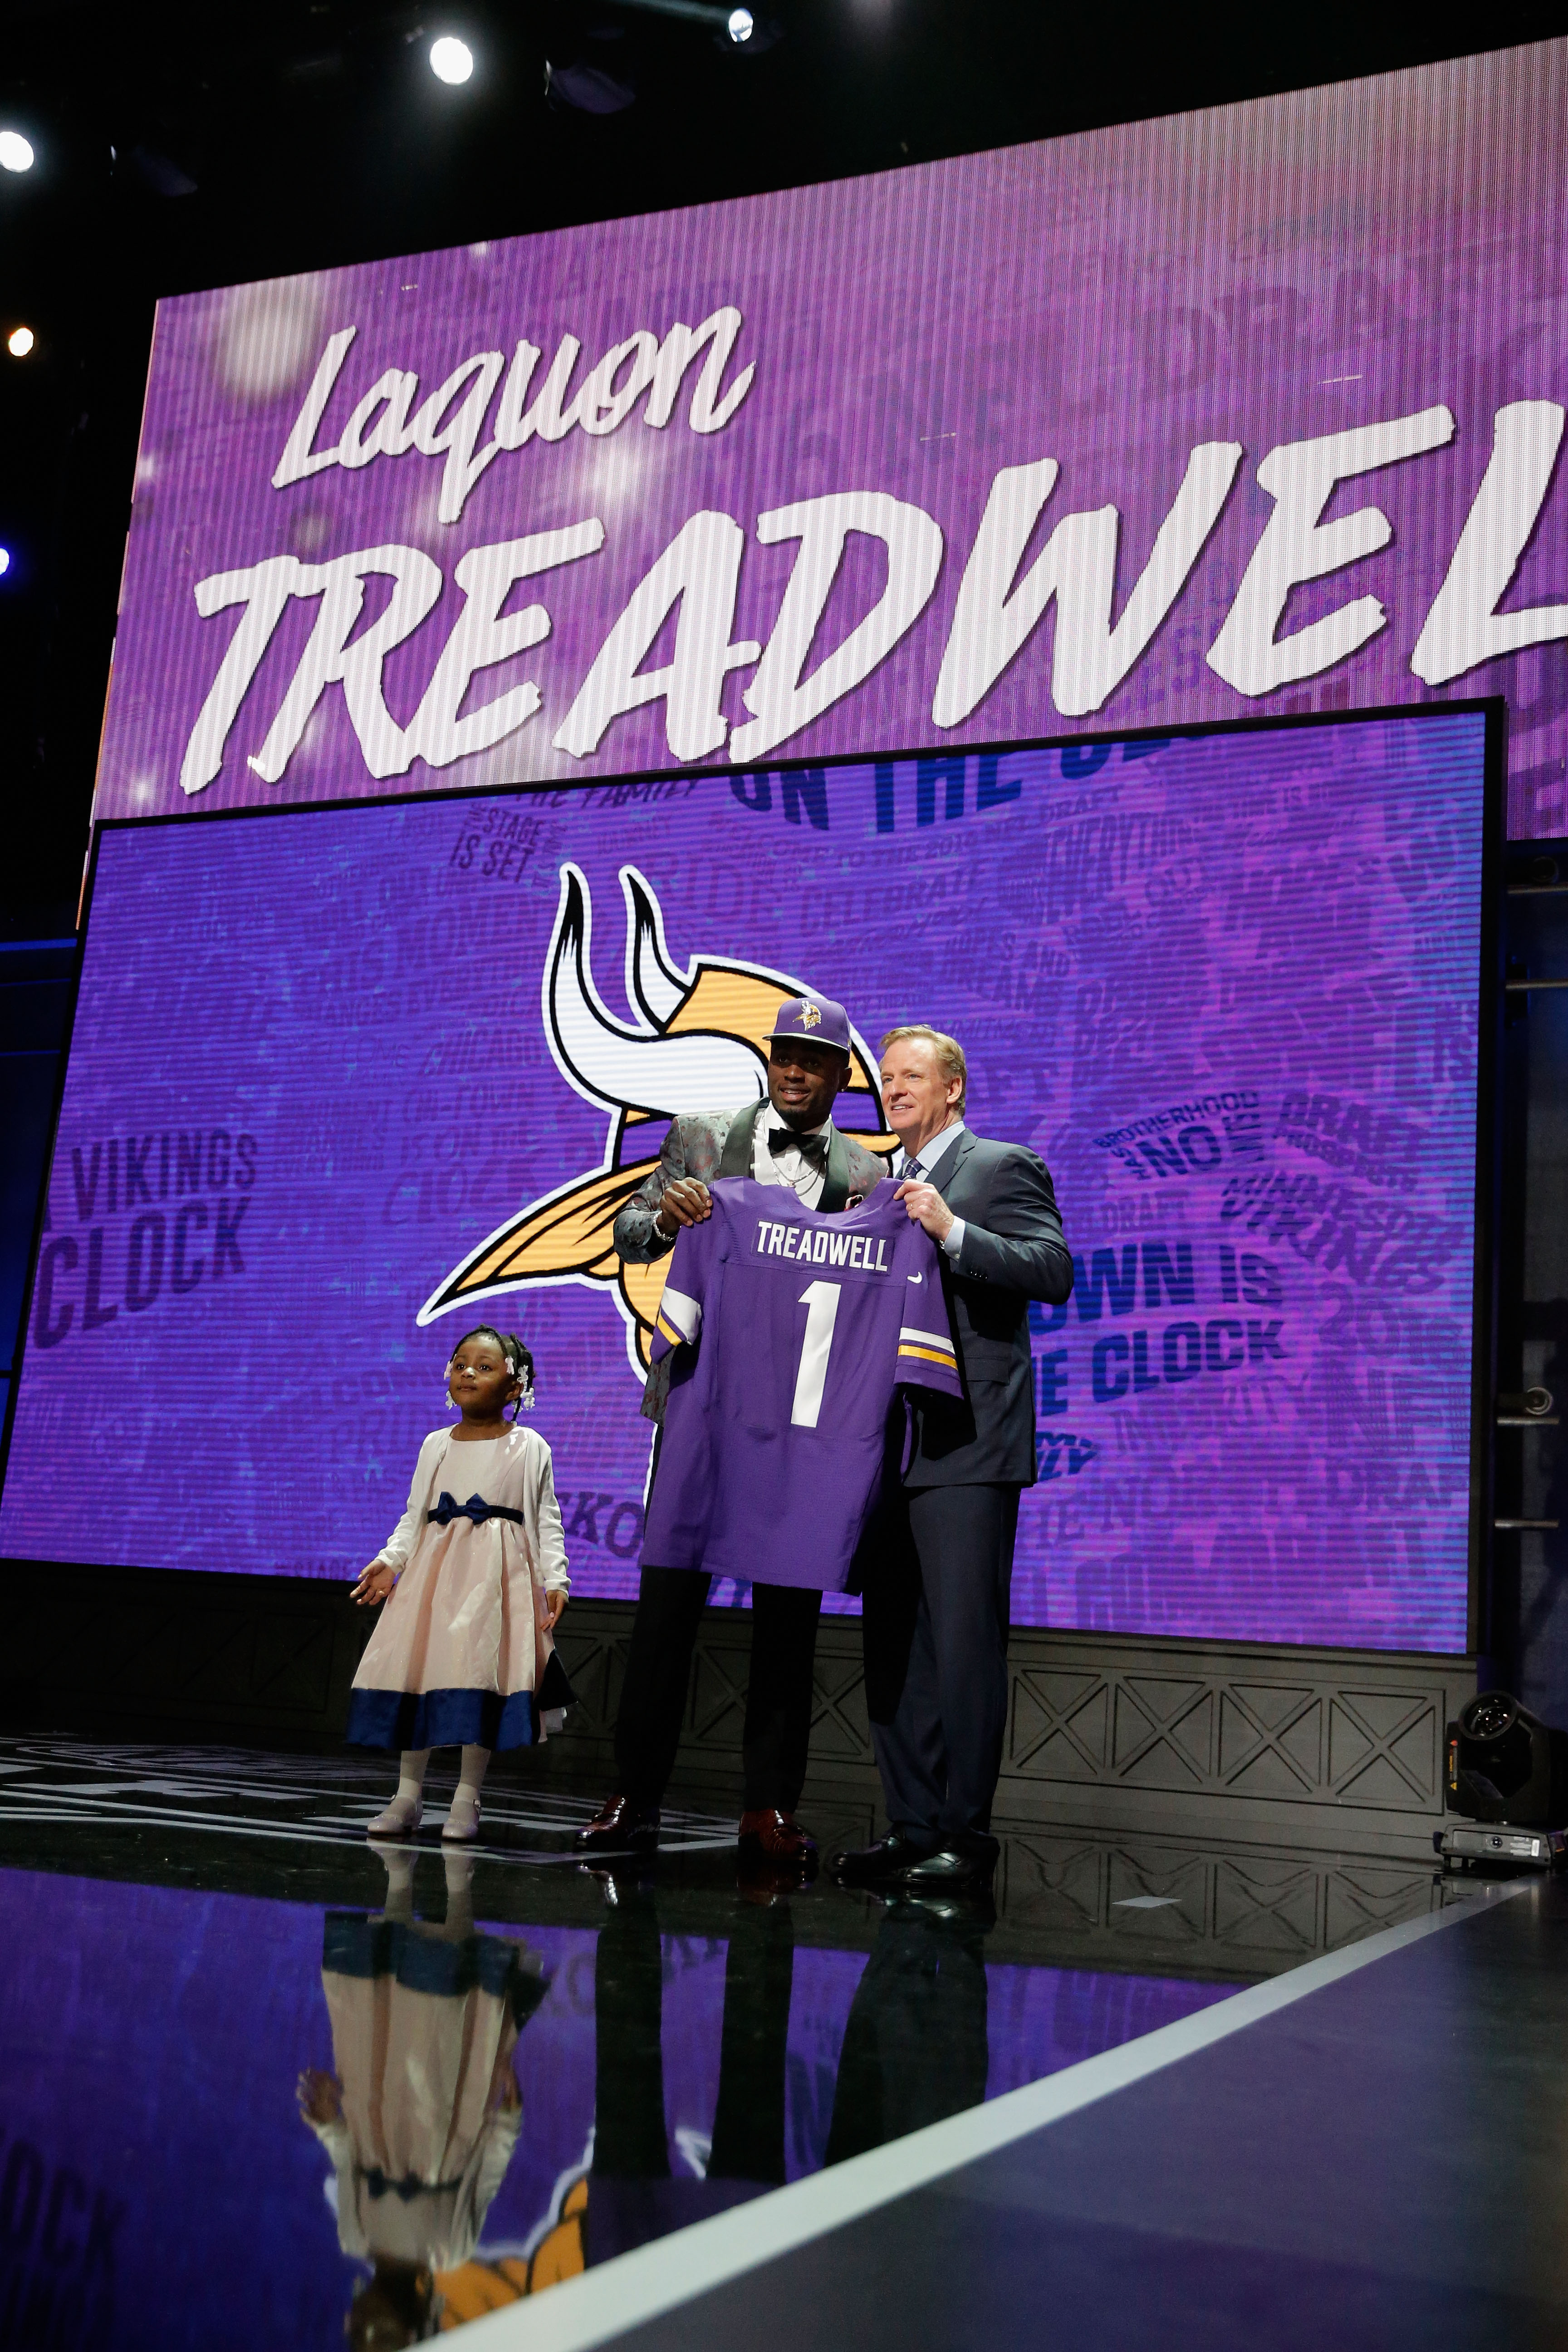 Were the Vikings one move away from this picture being very different?